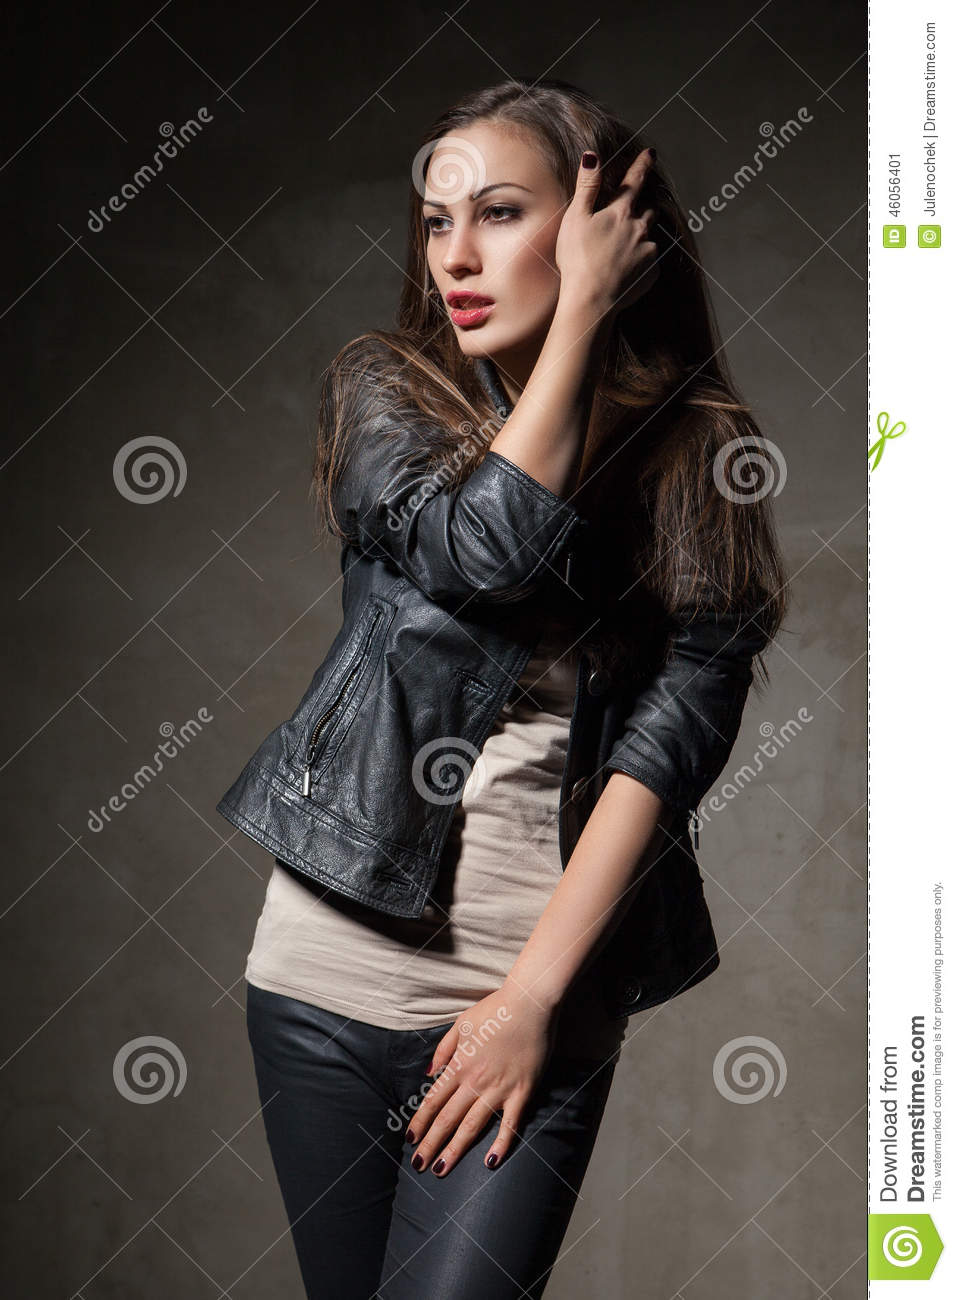 Amazing Attractive Woman In Black Leather Jacket And Pants Stock Photo  Image